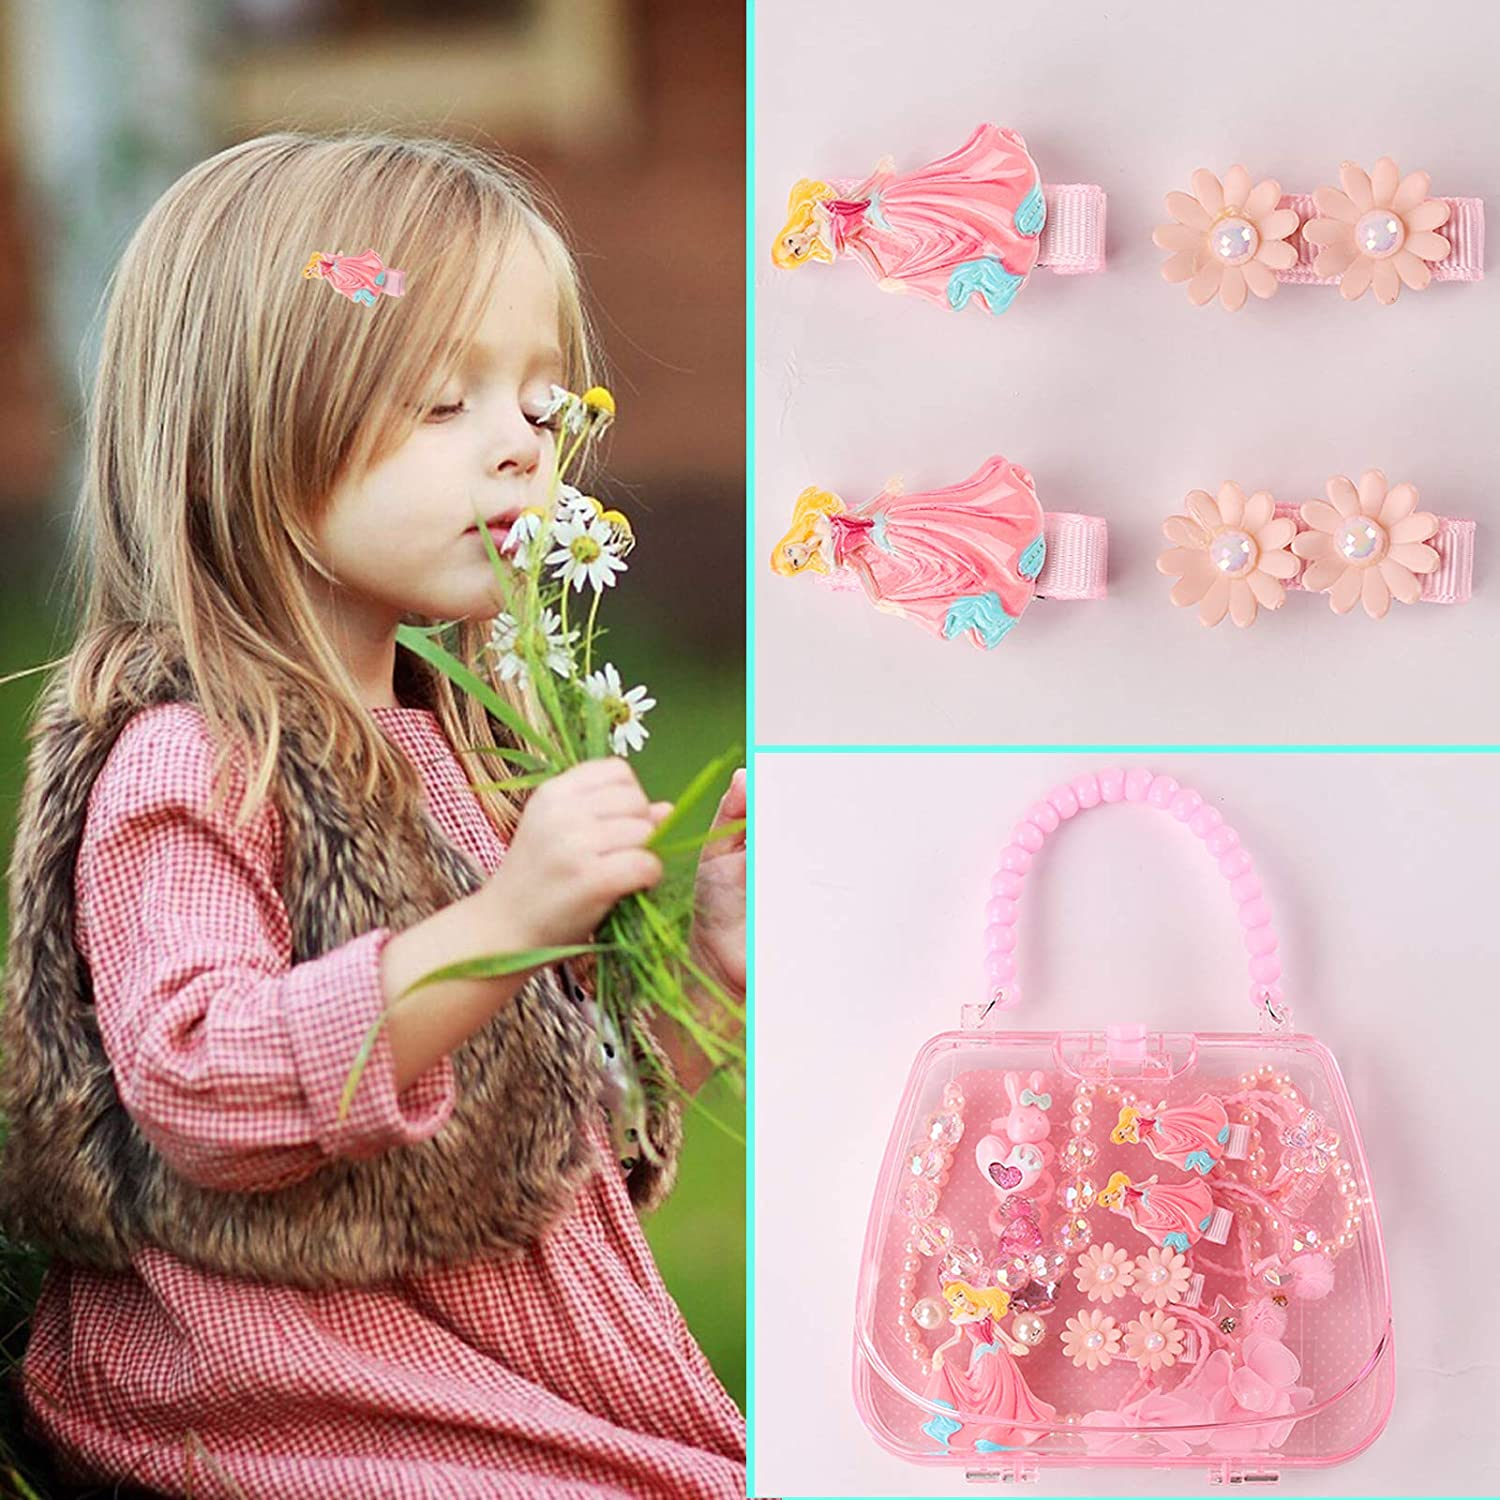 Pink Seatecks18 Pack Cute Jewelry Kits for Little Girls Plastic Handbag Necklace Bracelet Ring Earrings Hair Clips Hair Ties Set Party Favors Gift for Toddler Princess Jewelry Dress Up